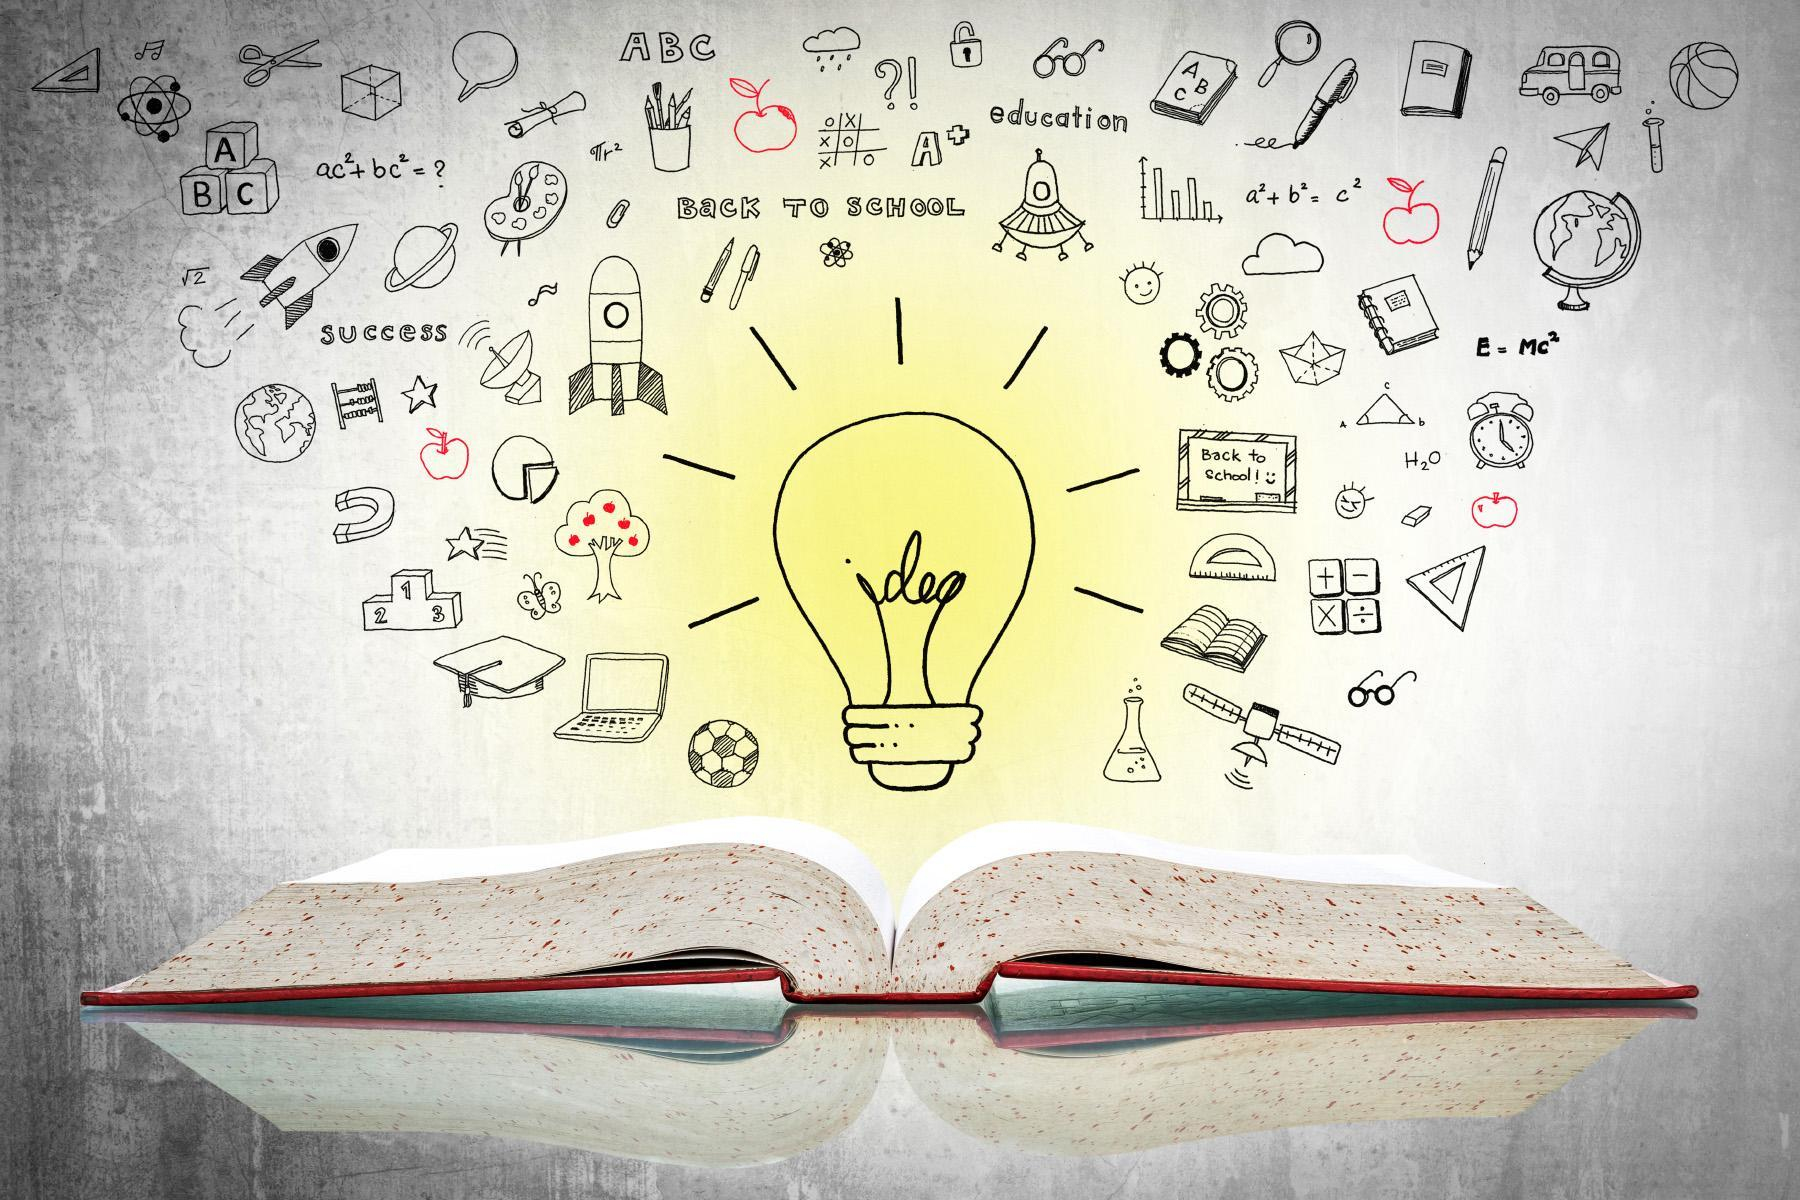 Education concept with innovative light bulb on book with doodle